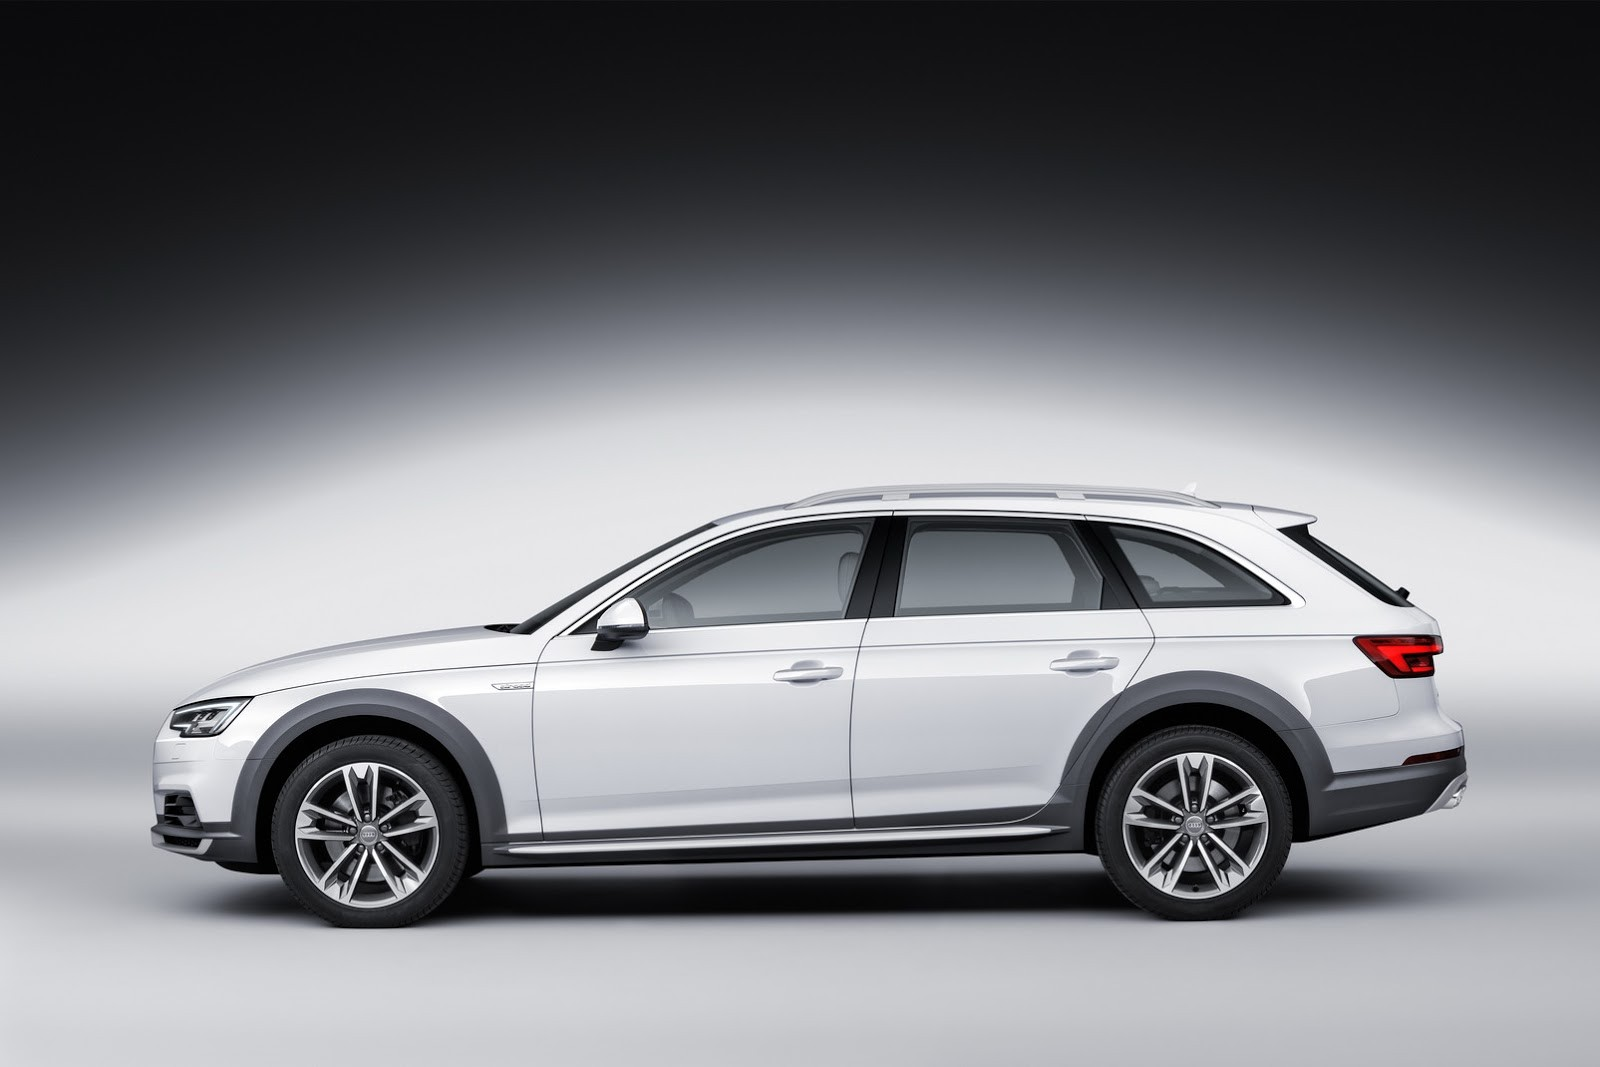 Audi A4 Allroad Quattro Starts At 44750 With 20 And 30 Engines B9